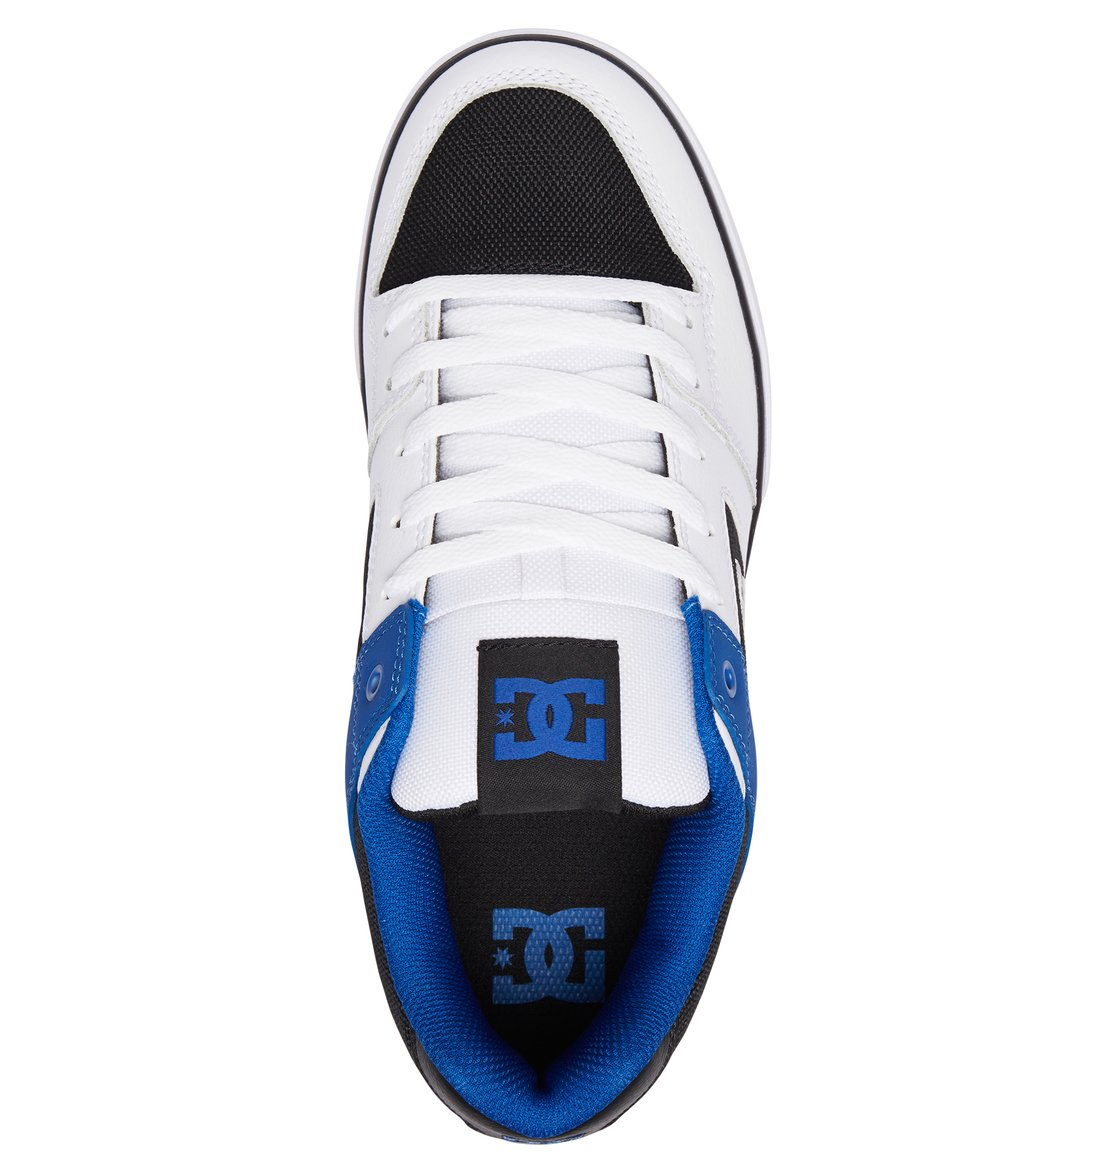 DC-Shoes-Pure-Schuhe-fuer-Maenner-300660